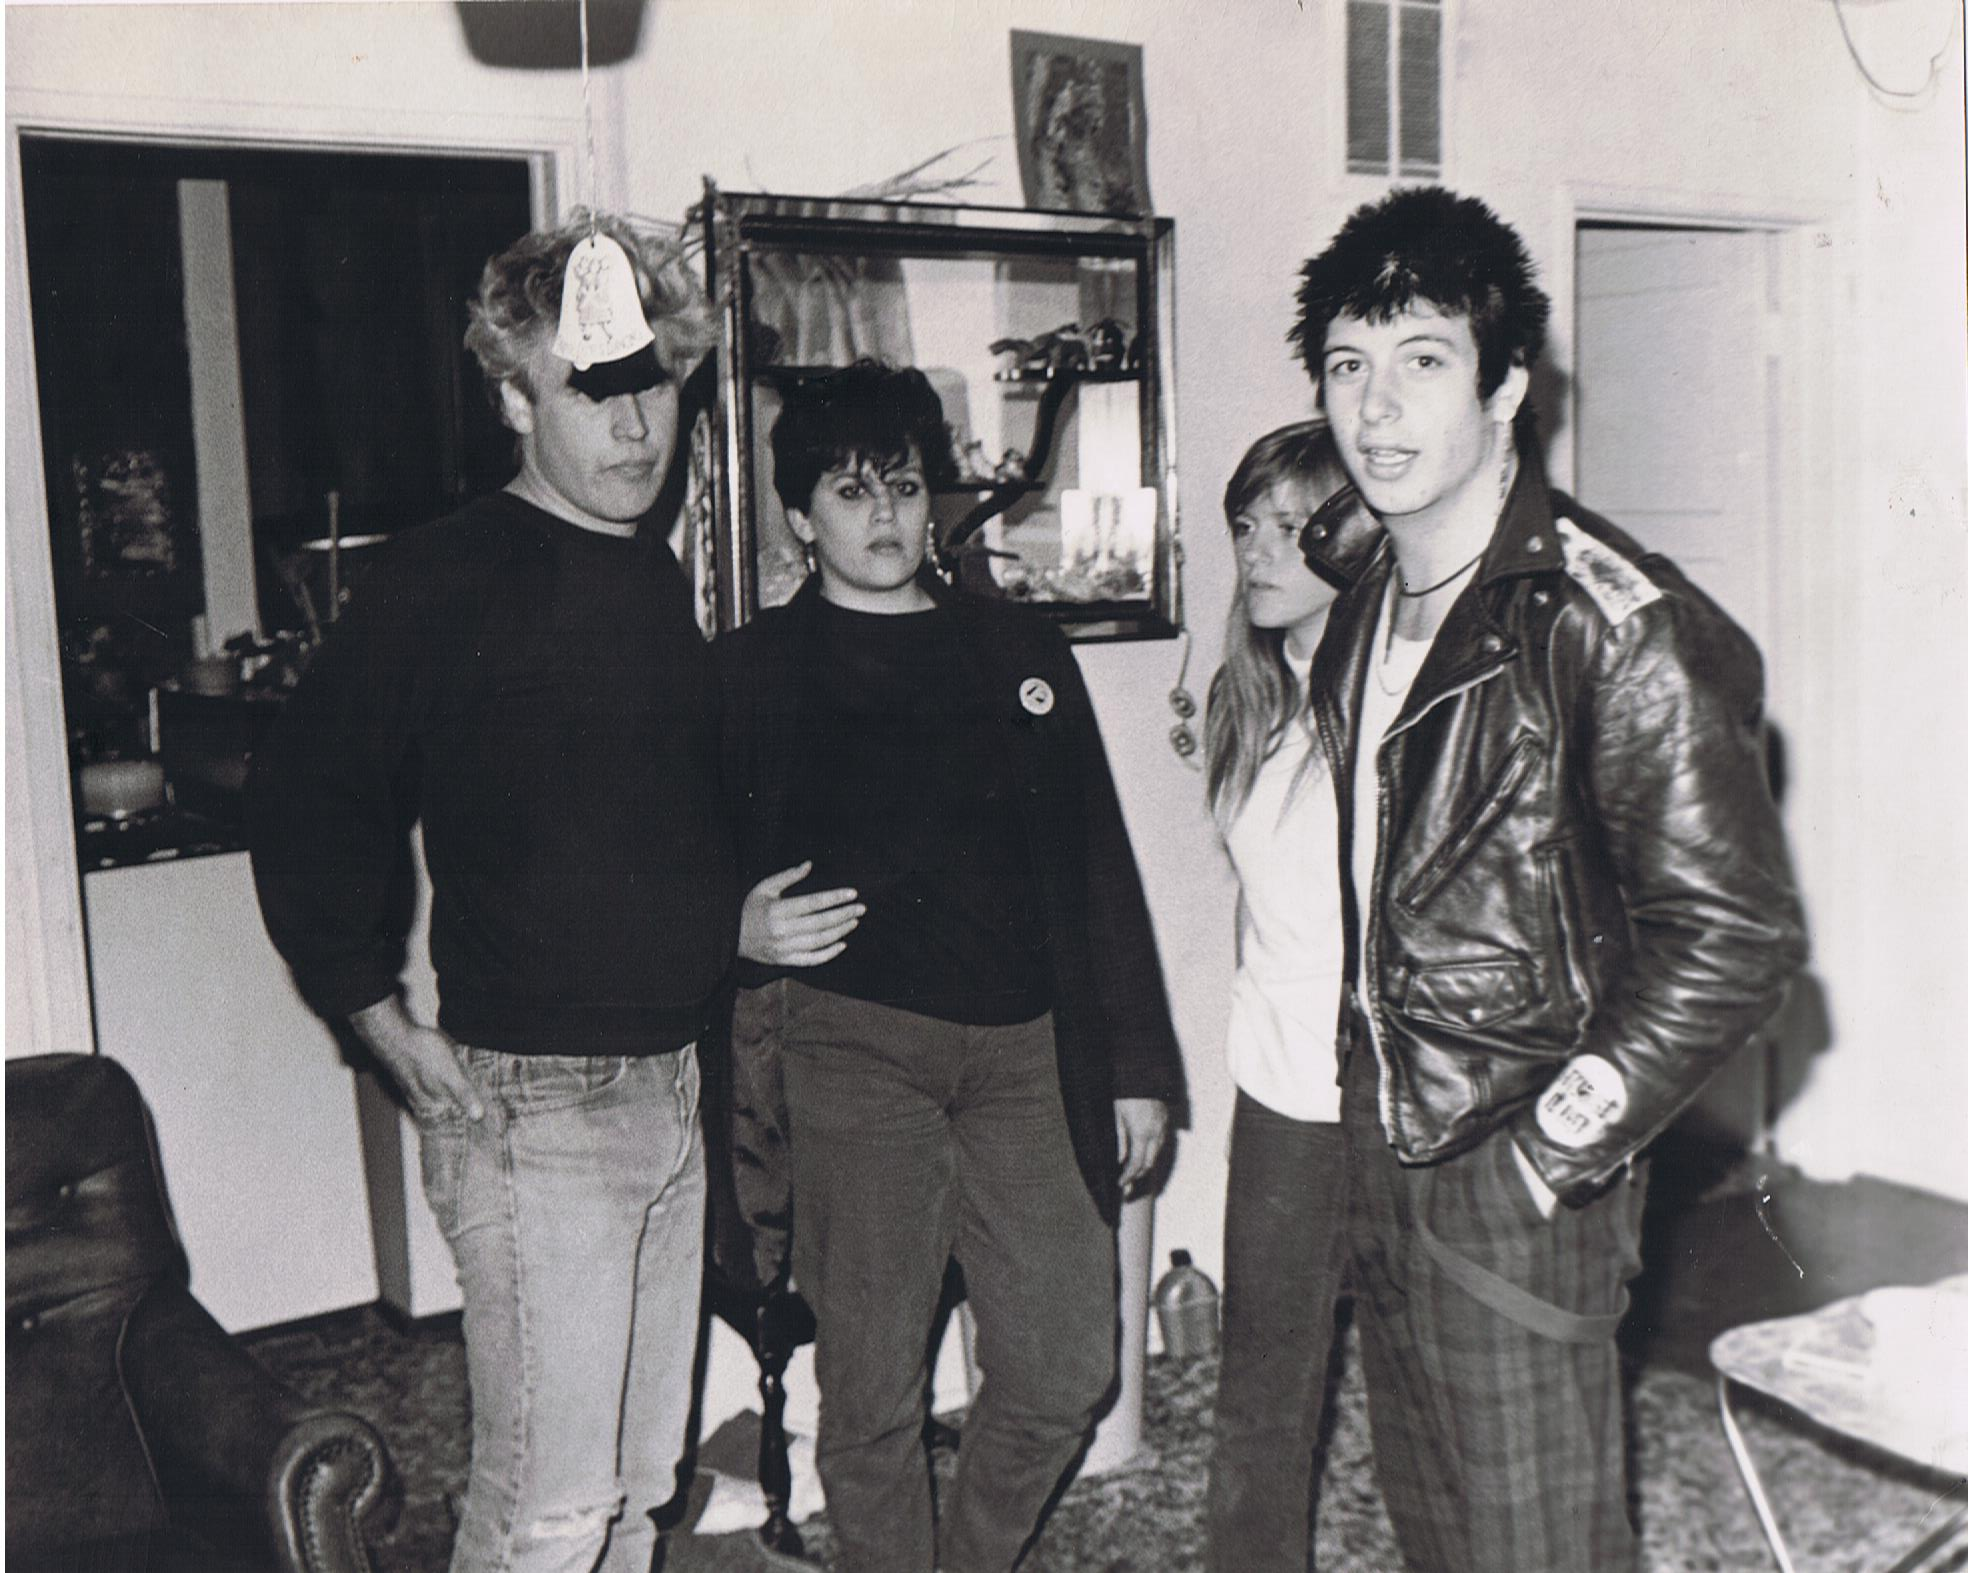 Paul, Kori, Mike Ness from Social Distorition and his girlfrind, 1980